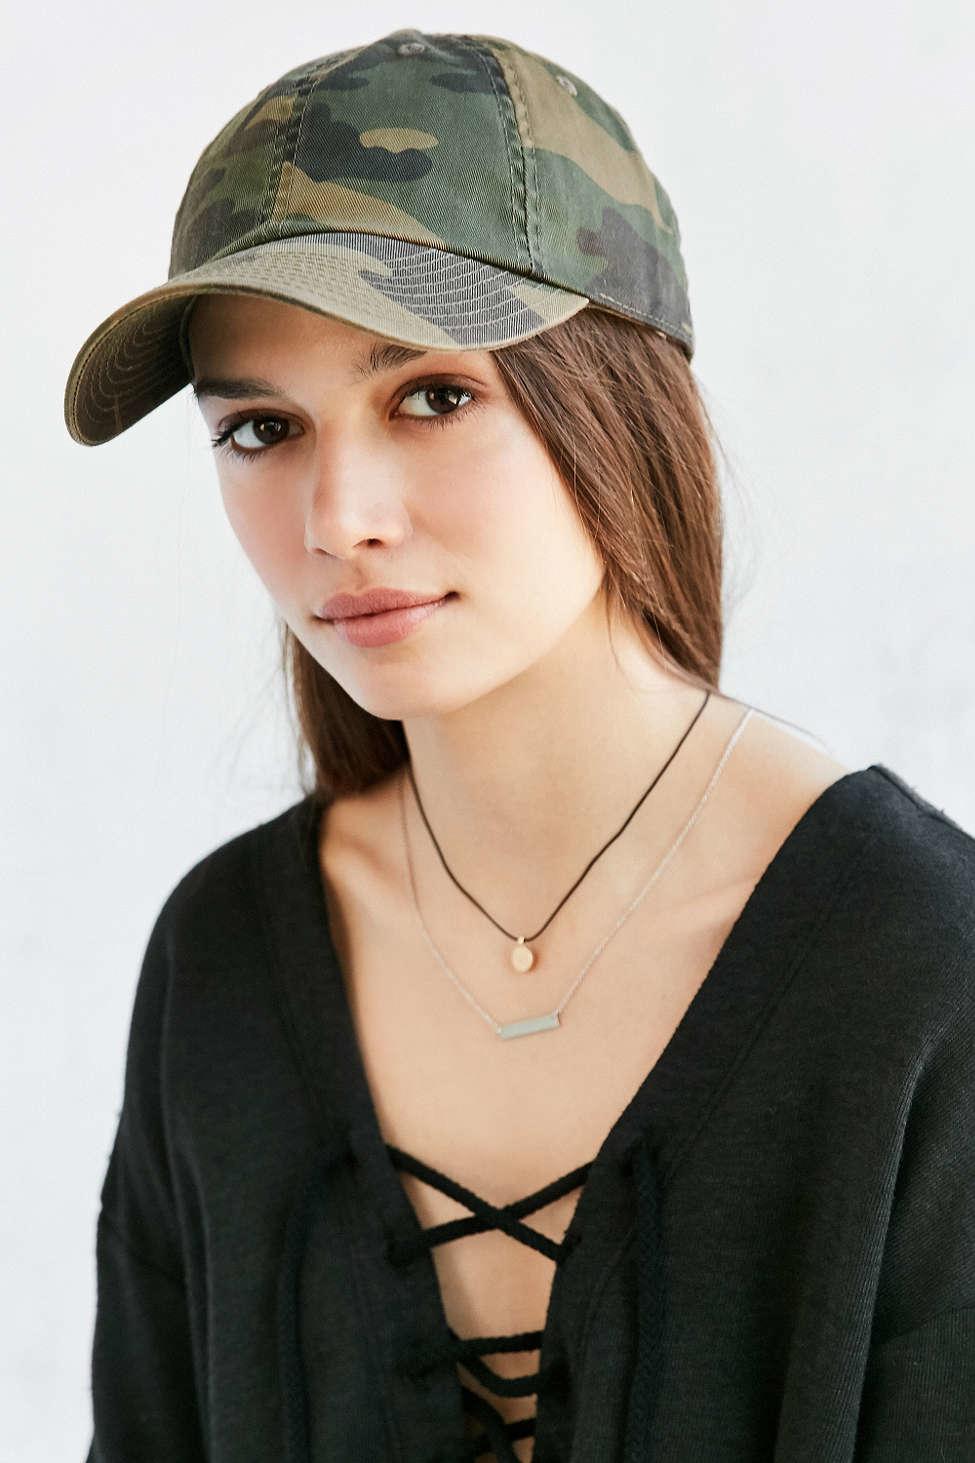 Lyst - American Needle Washed Canvas Baseball Hat in Green 29a2ad48b1a